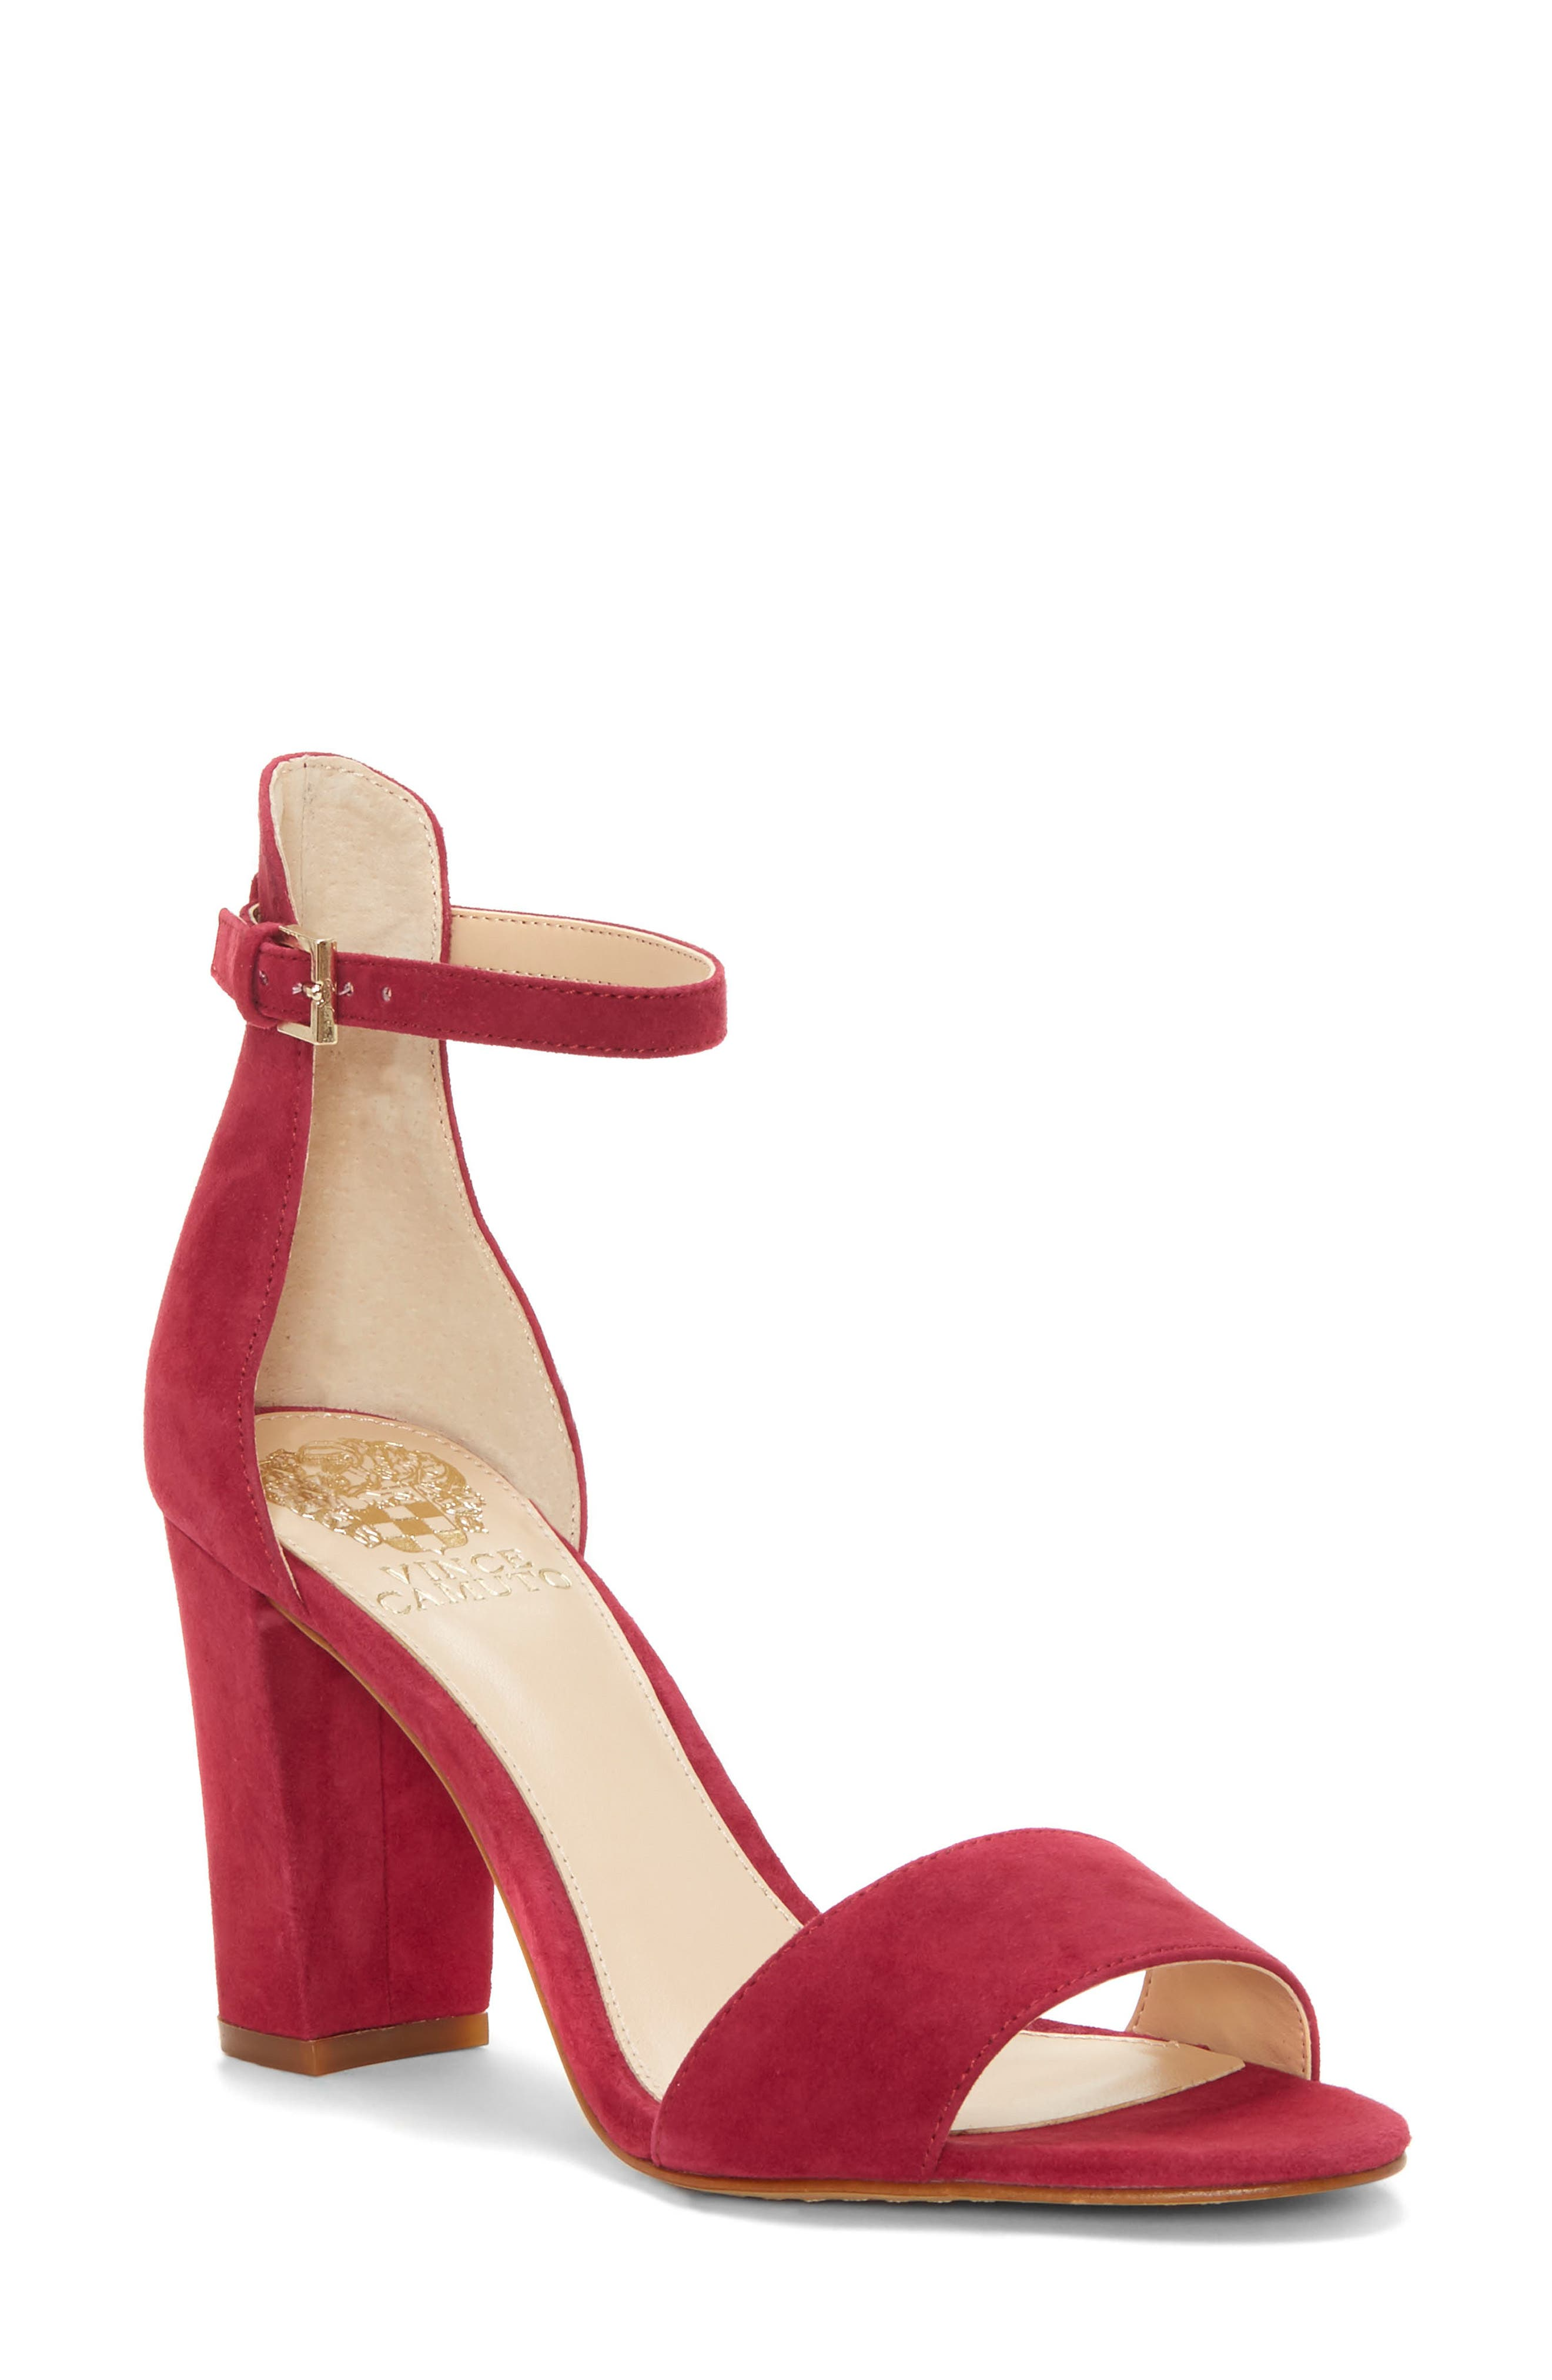 Corlina Ankle Strap Sandal,                             Main thumbnail 1, color,                             SWEET BERRY SUEDE